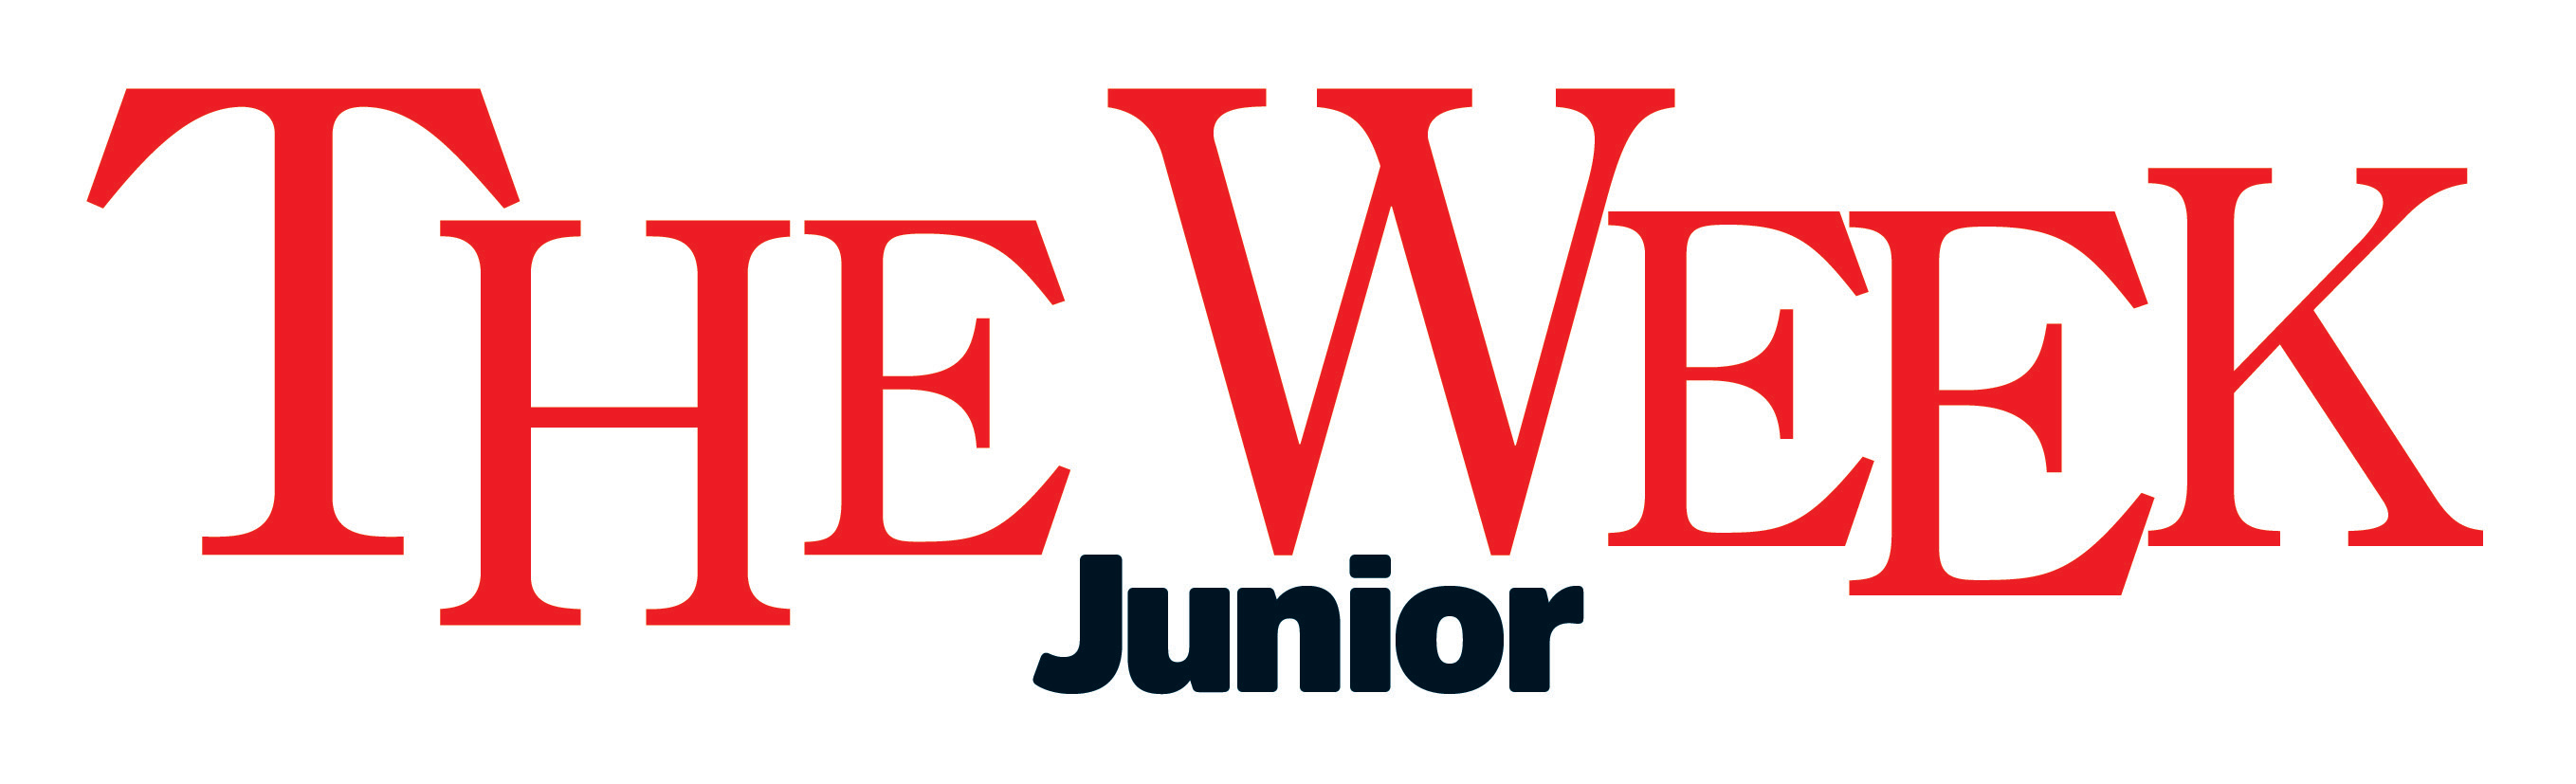 TheWeekJunior_Logo_2015-2